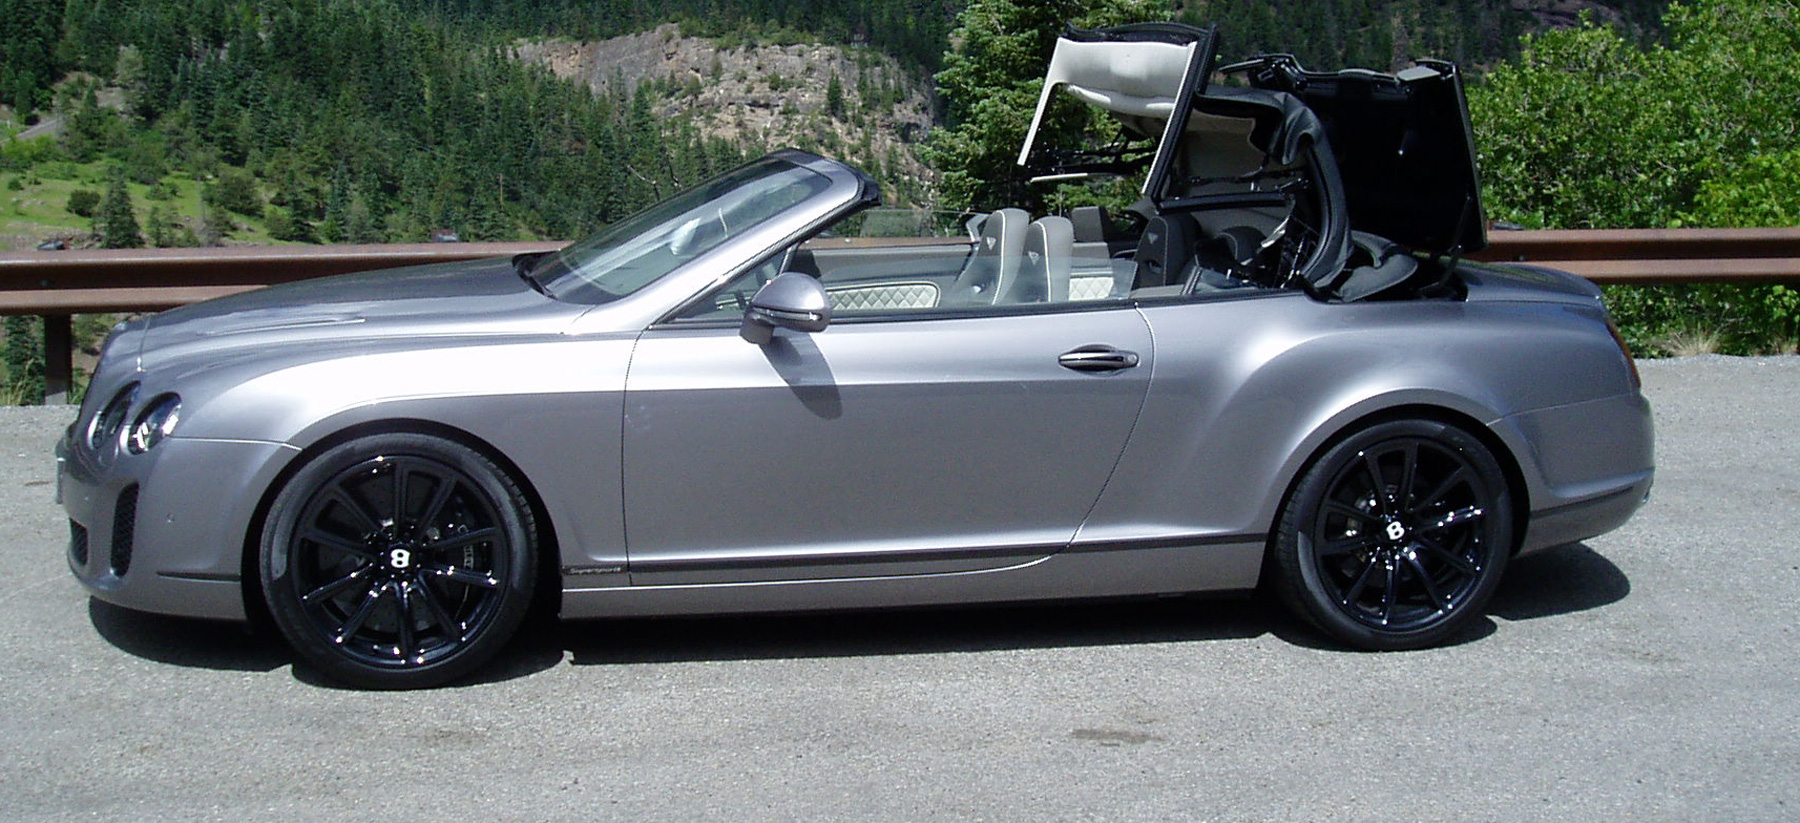 Test drive 2011 bentley continental supersports convertible our power for the new supersports convertible comes from the same 60 liter w12 twin turbo engine that propels the coupe it produces 621 brake horsepower at vanachro Image collections